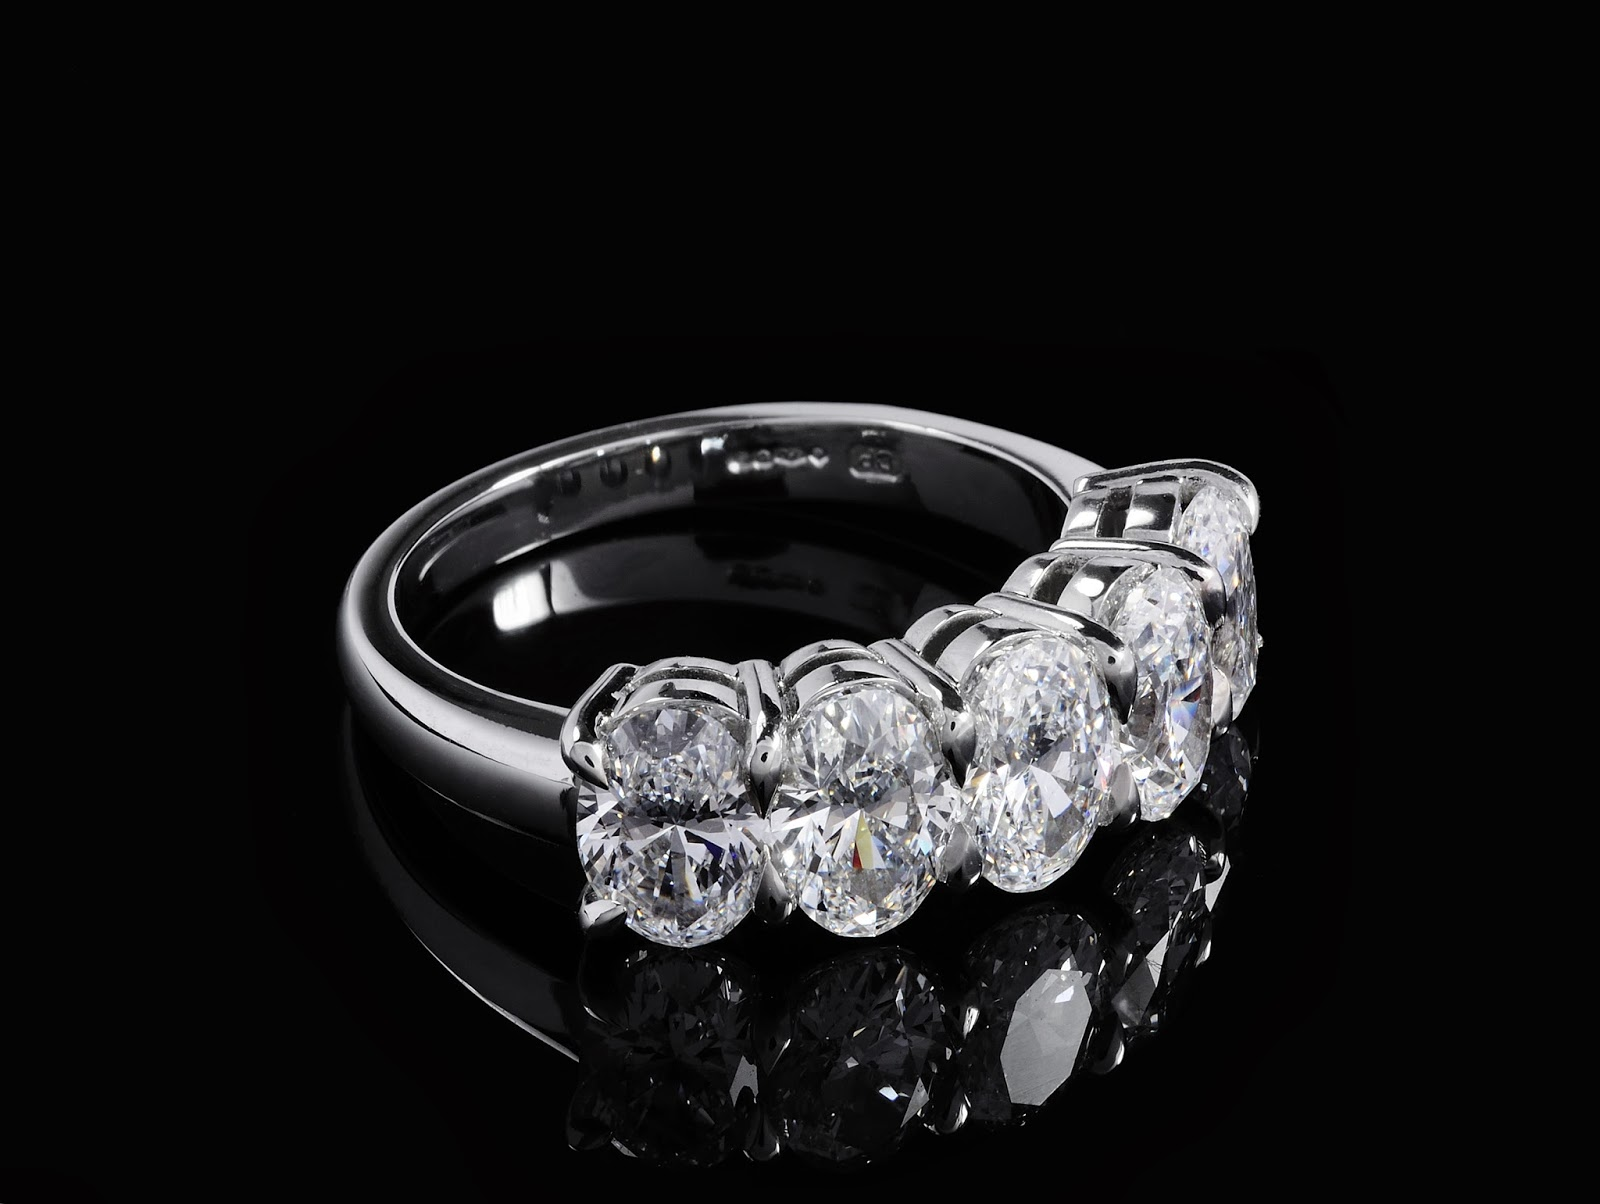 diamond by rings designs americus eric anniversary jewellery